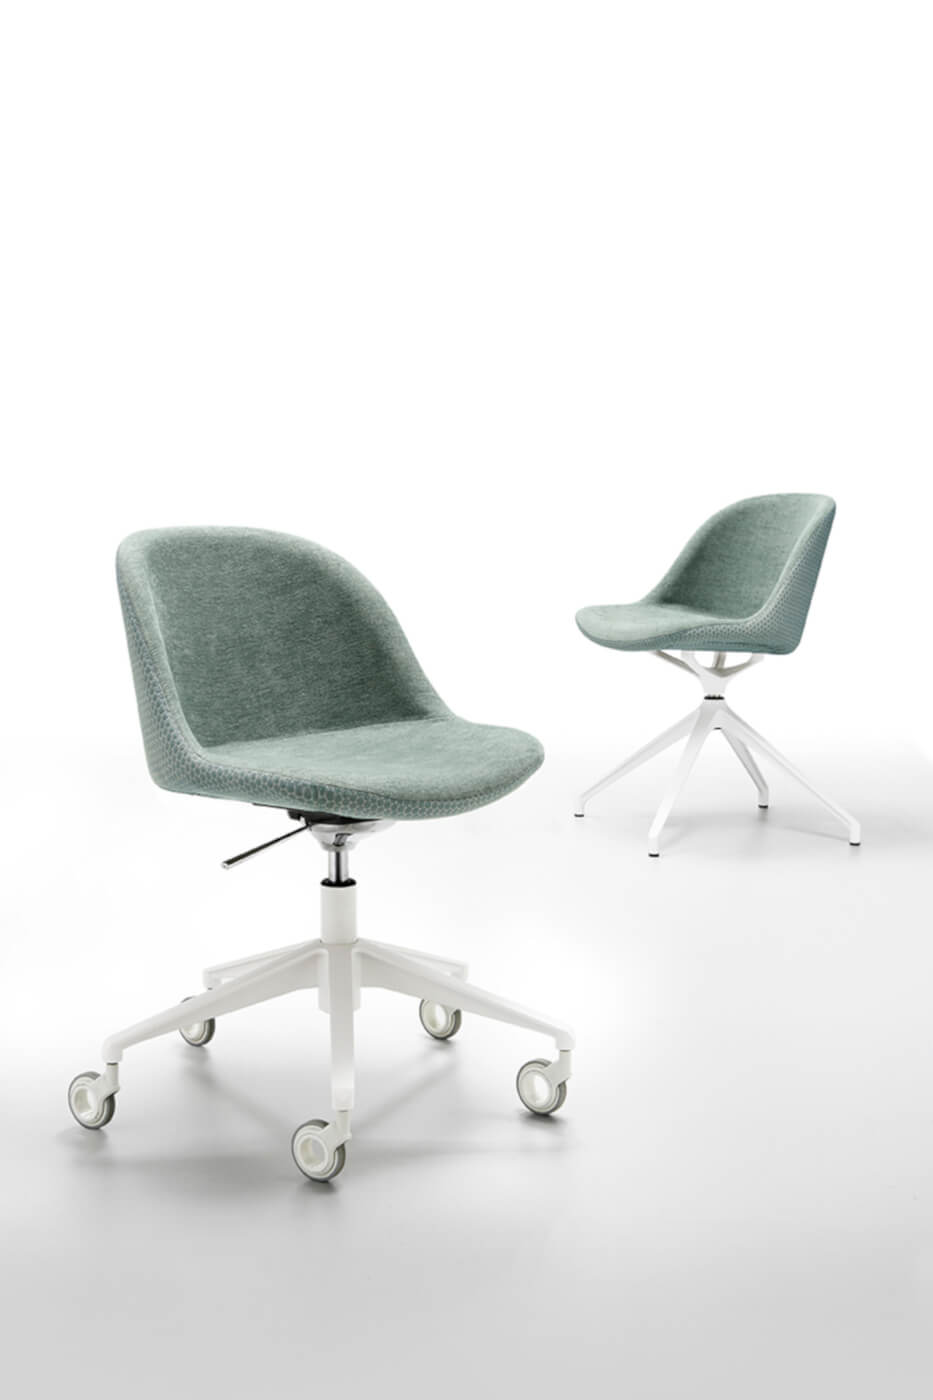 Sonny chair with wheels with green fabric seat and white metal base